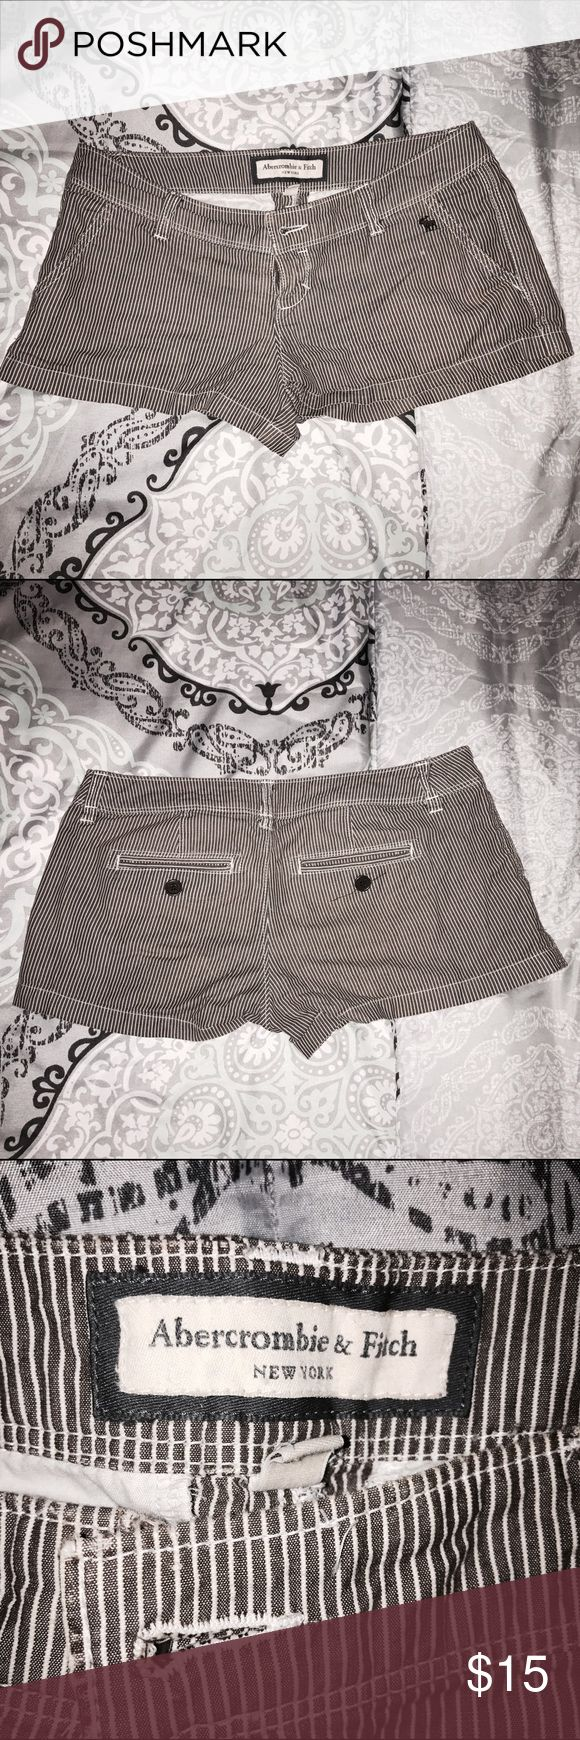 Abercrombie and Fitch striped shorts These shorts have never been worn. They're Abercrombie and Fitch, size 0 but fits a 1 or 2 Abercrombie & Fitch Shorts